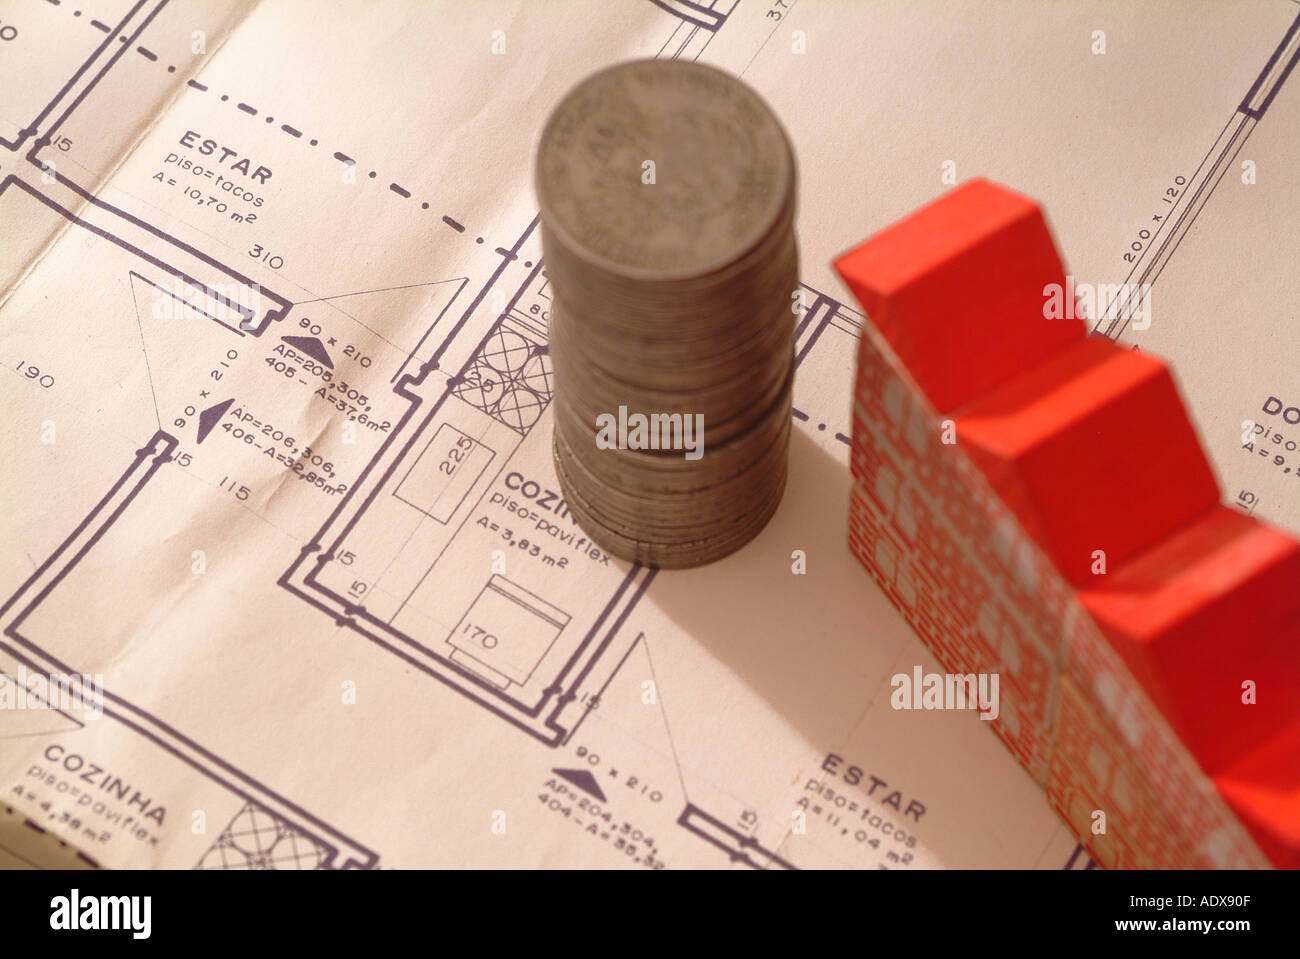 Architecture blueprint blocks toy model building red roof plan architecture blueprint blocks toy model building red roof plan scheme diagram project concept conceptual background stack pile c malvernweather Image collections